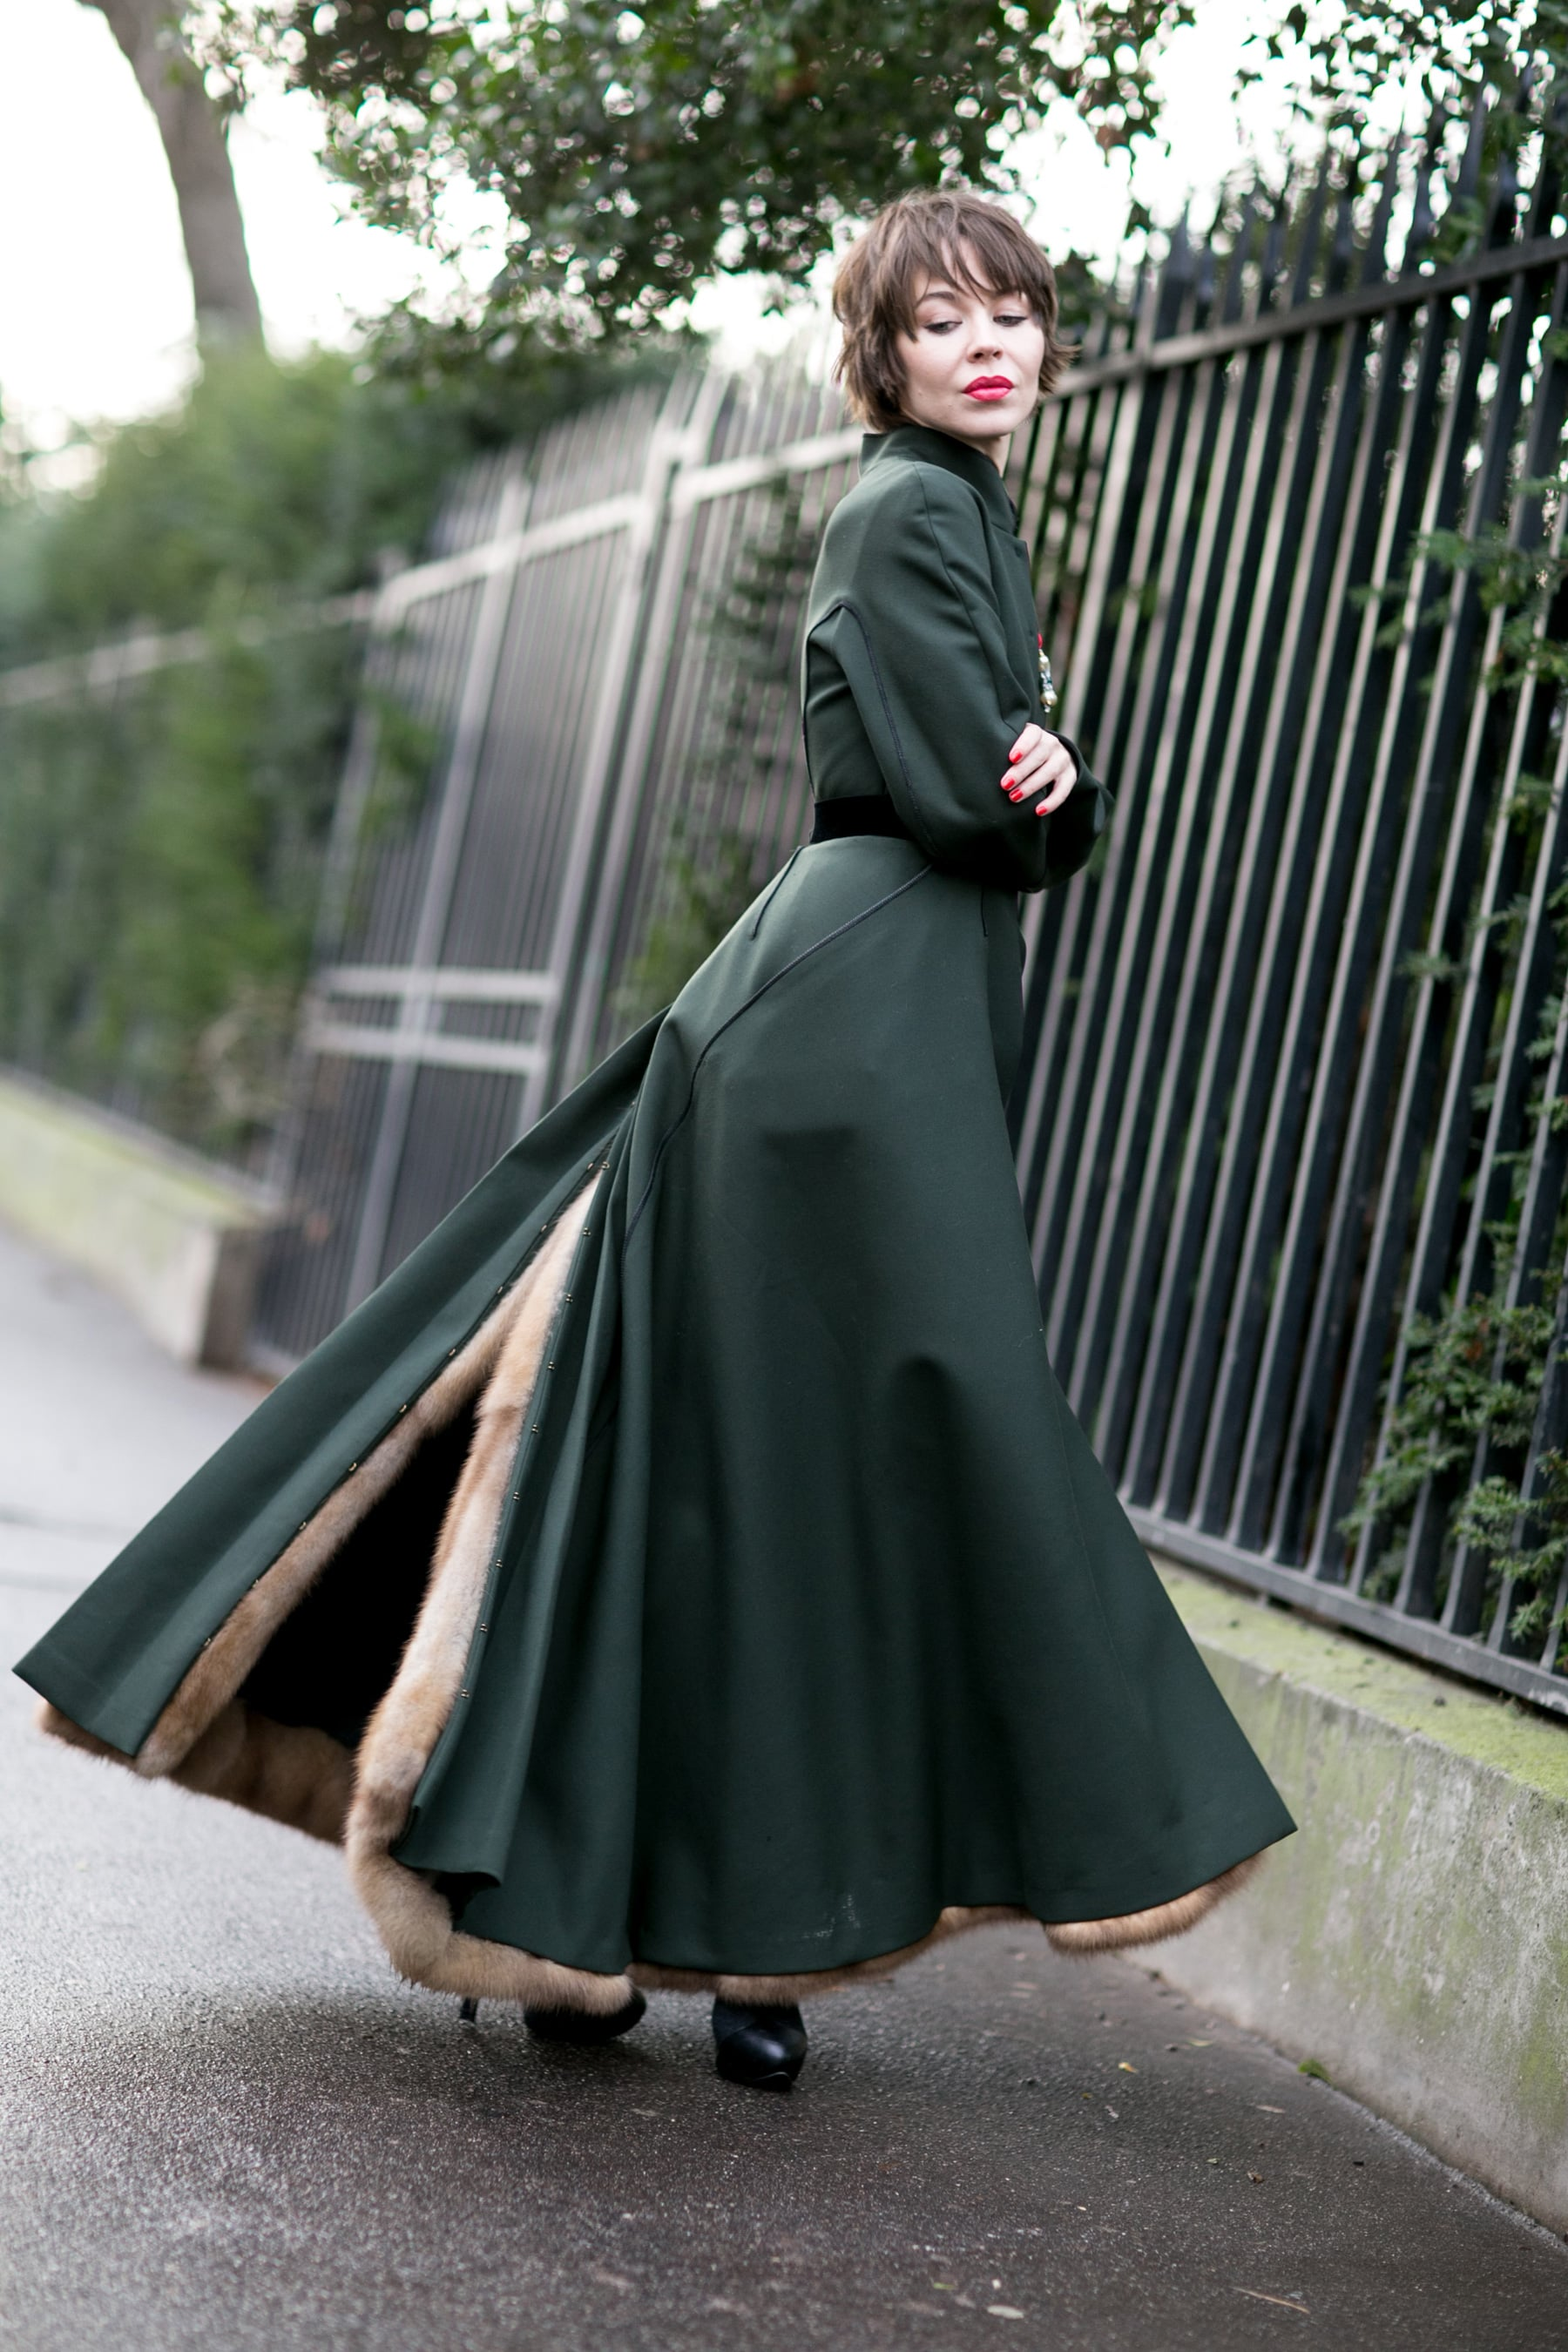 Ulyana Sergeenko showed off her street style couture with a romantic twirl.